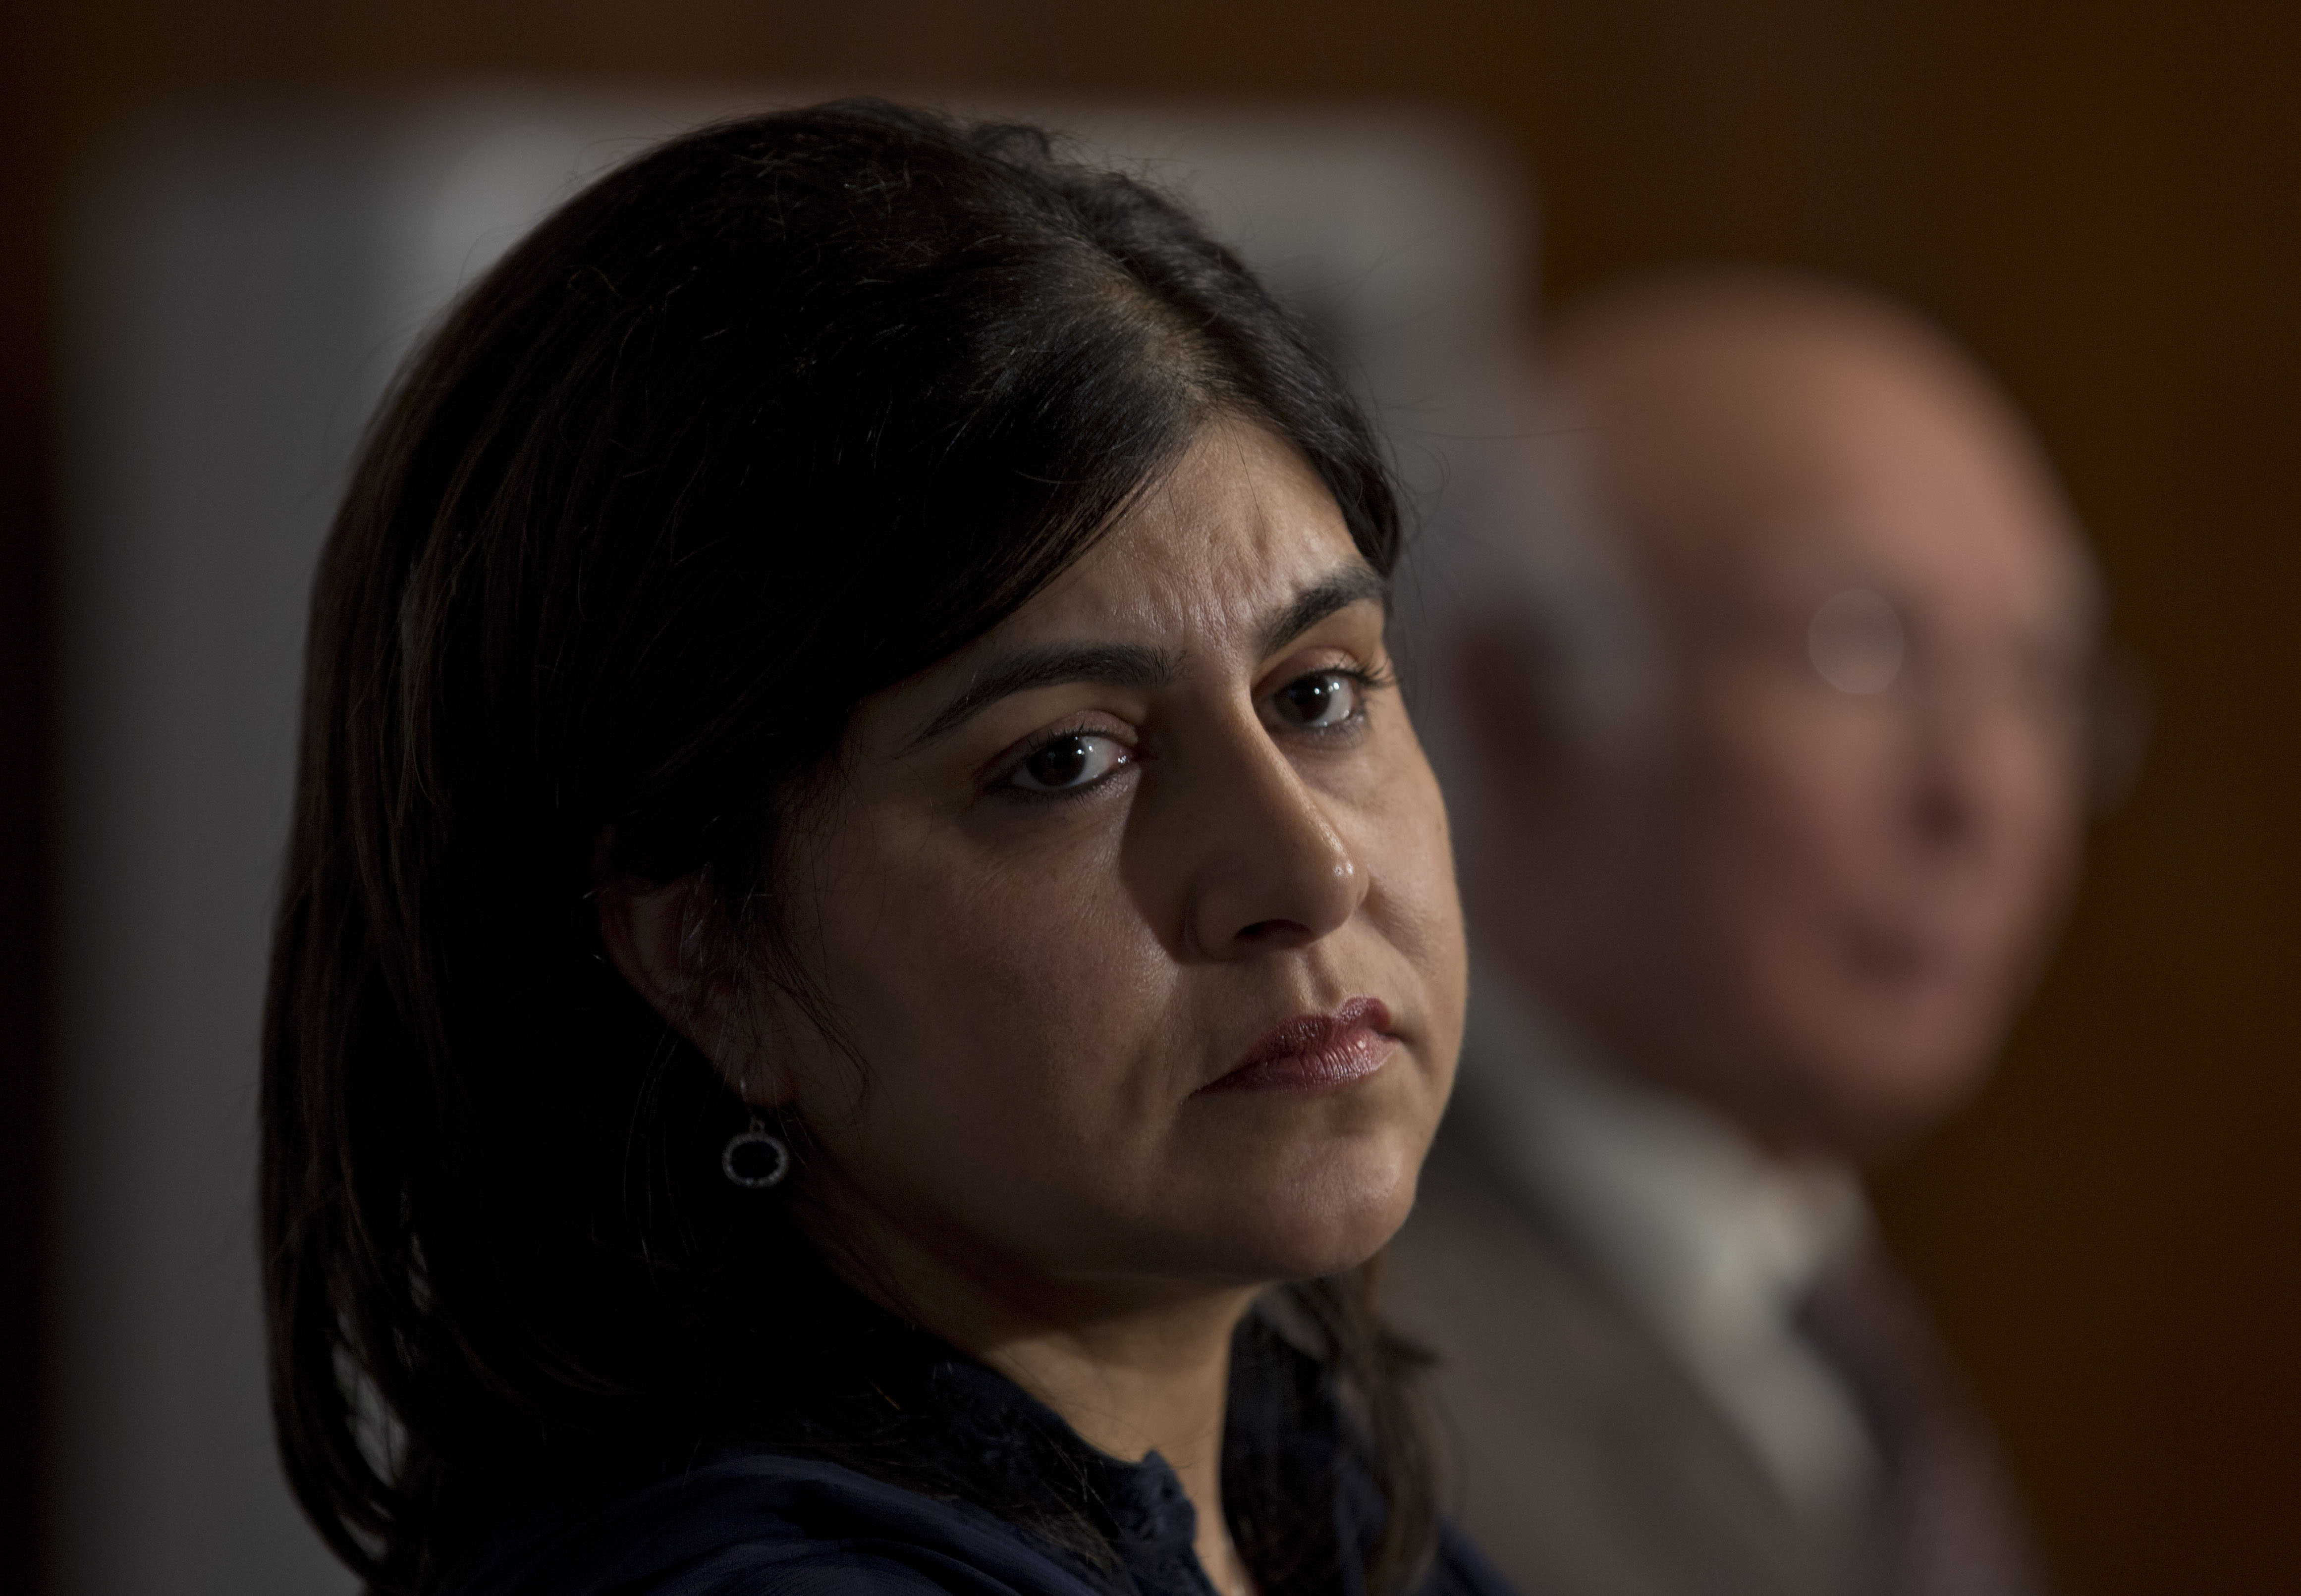 Baroness Sayeeda Warsi, British senior minister of state at the Foreign and Commonwealth Office, listens to a reporter during a joint news conference with Sartaj Aziz in Islamabad, Pakistan, Thursday, Oct. 3, 2013. Warsi met Pakistani officials and leadership to discus various bilateral, regional and international issues. (AP Photo/B.K. Bangash)